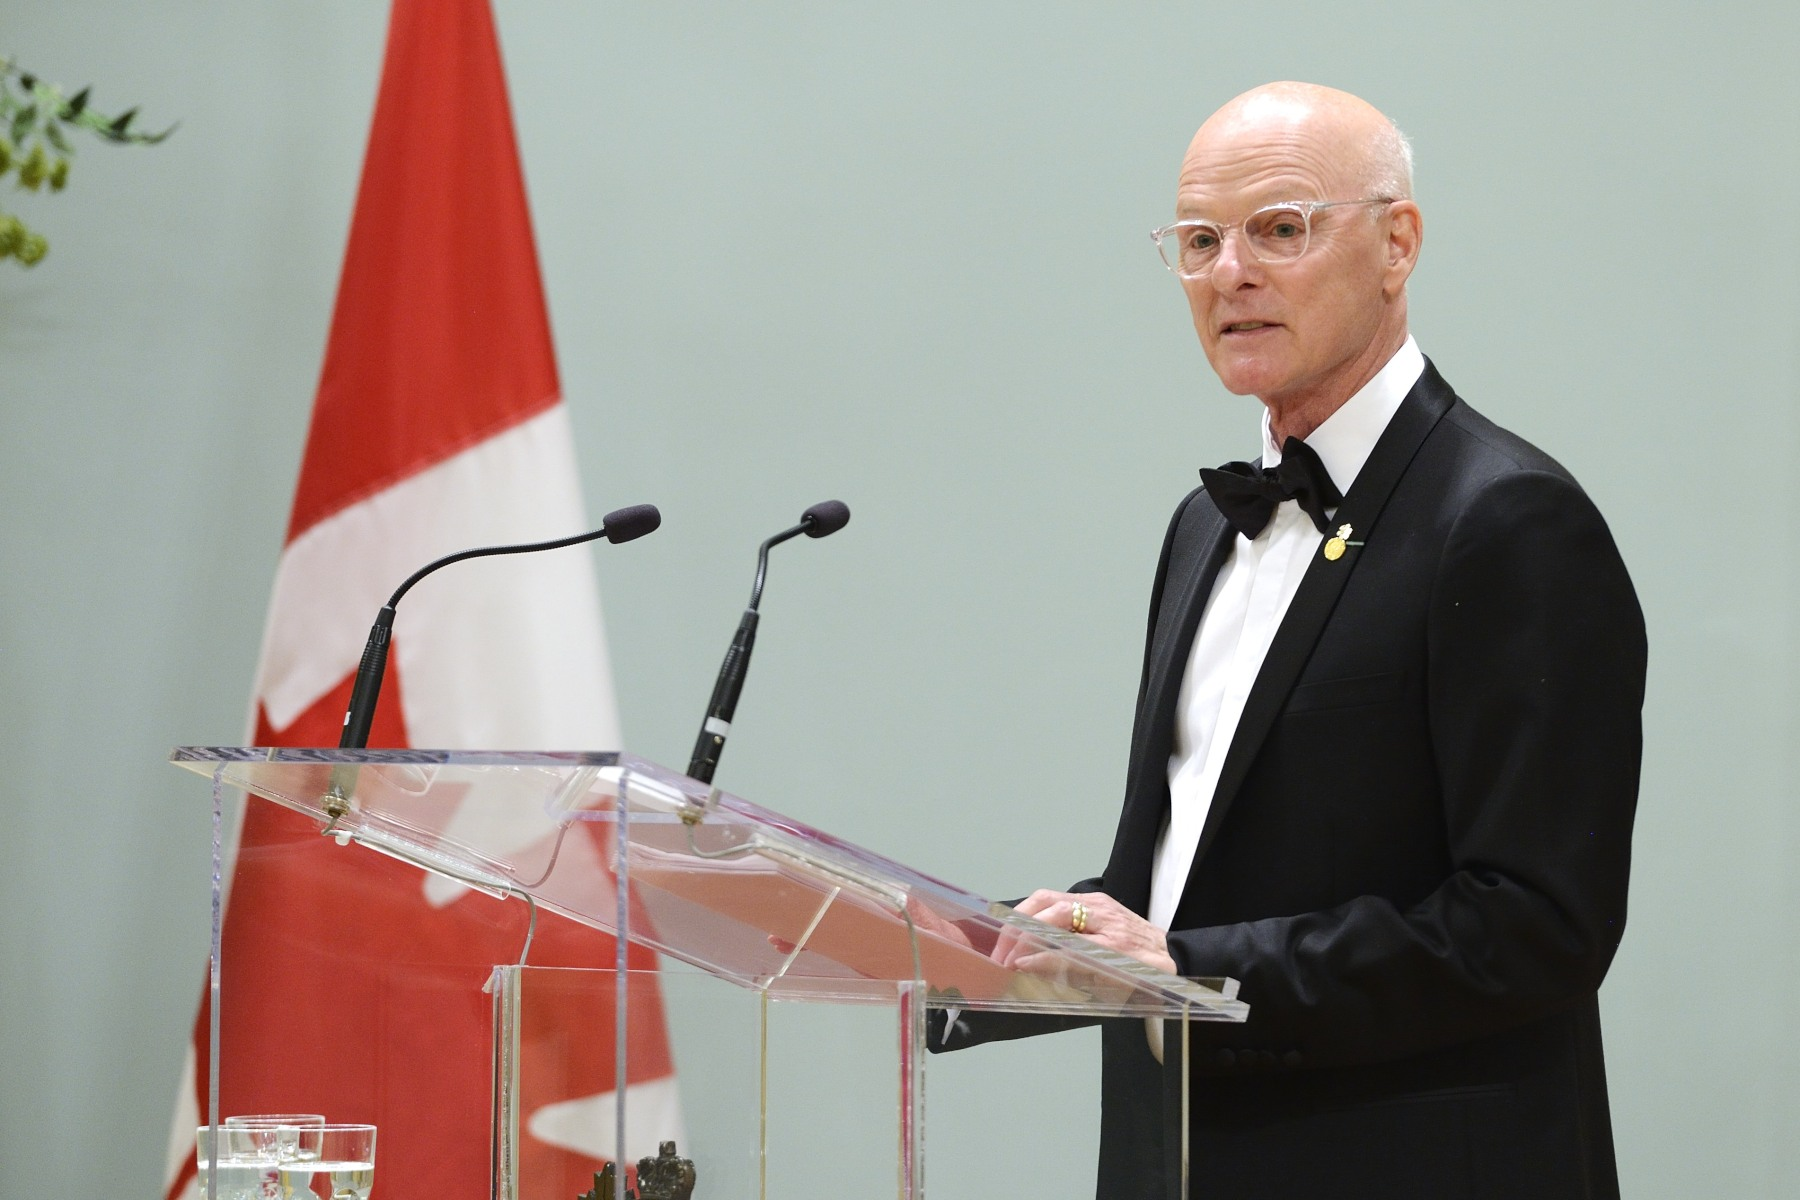 Paul-André Fortier, Co-Chair of the GGPAA Foundation, also delivered remark and co-presented the recipients.